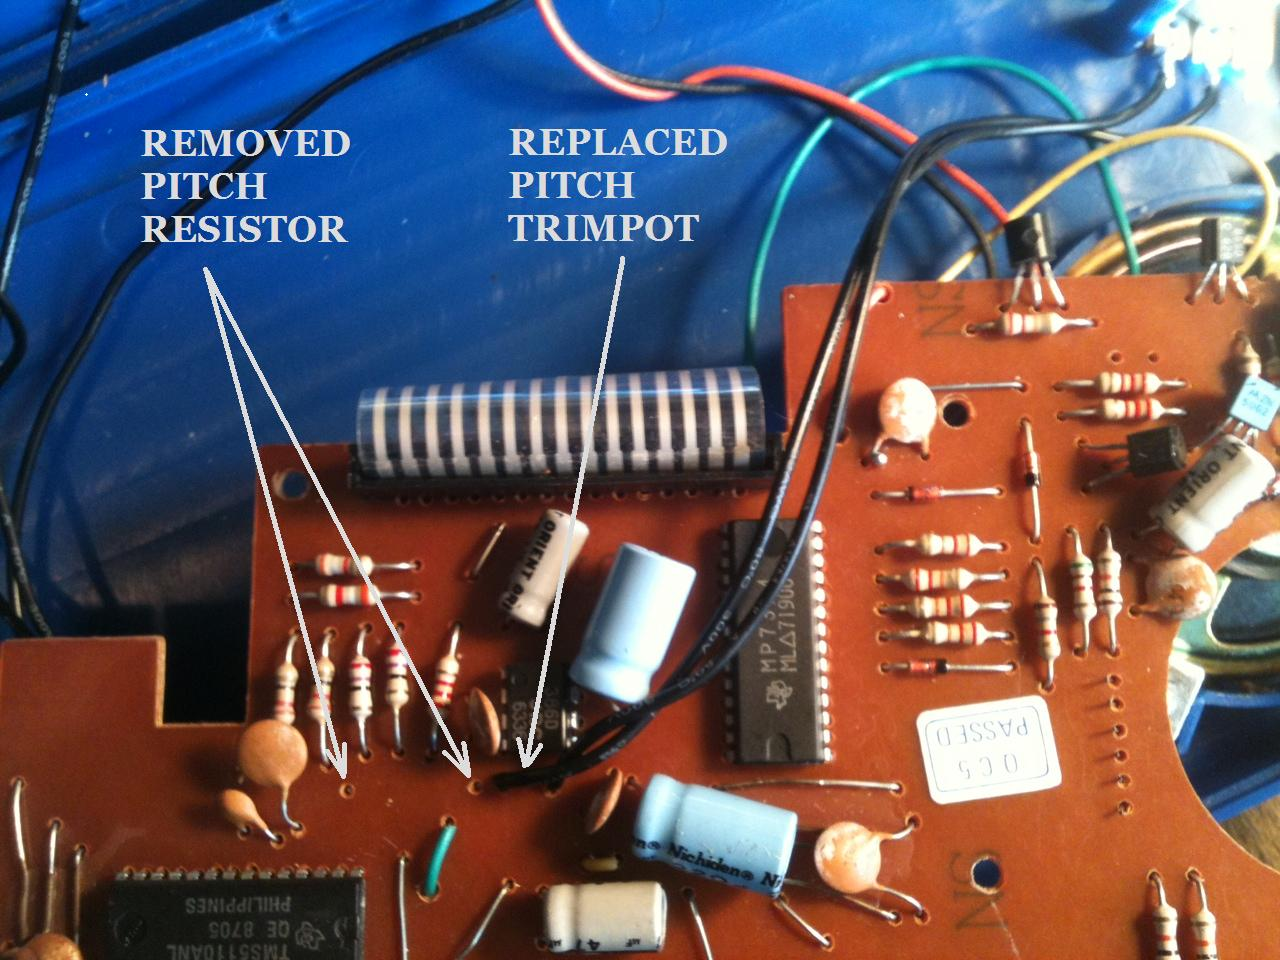 Carrion Luggage Coleco Talking Teacher Trim Pot Wiring Diagram Originally I Just Removed The Pitch Trimpot And Replaced It With A 100k Range Was Okay But Removing Resistor Next To Really